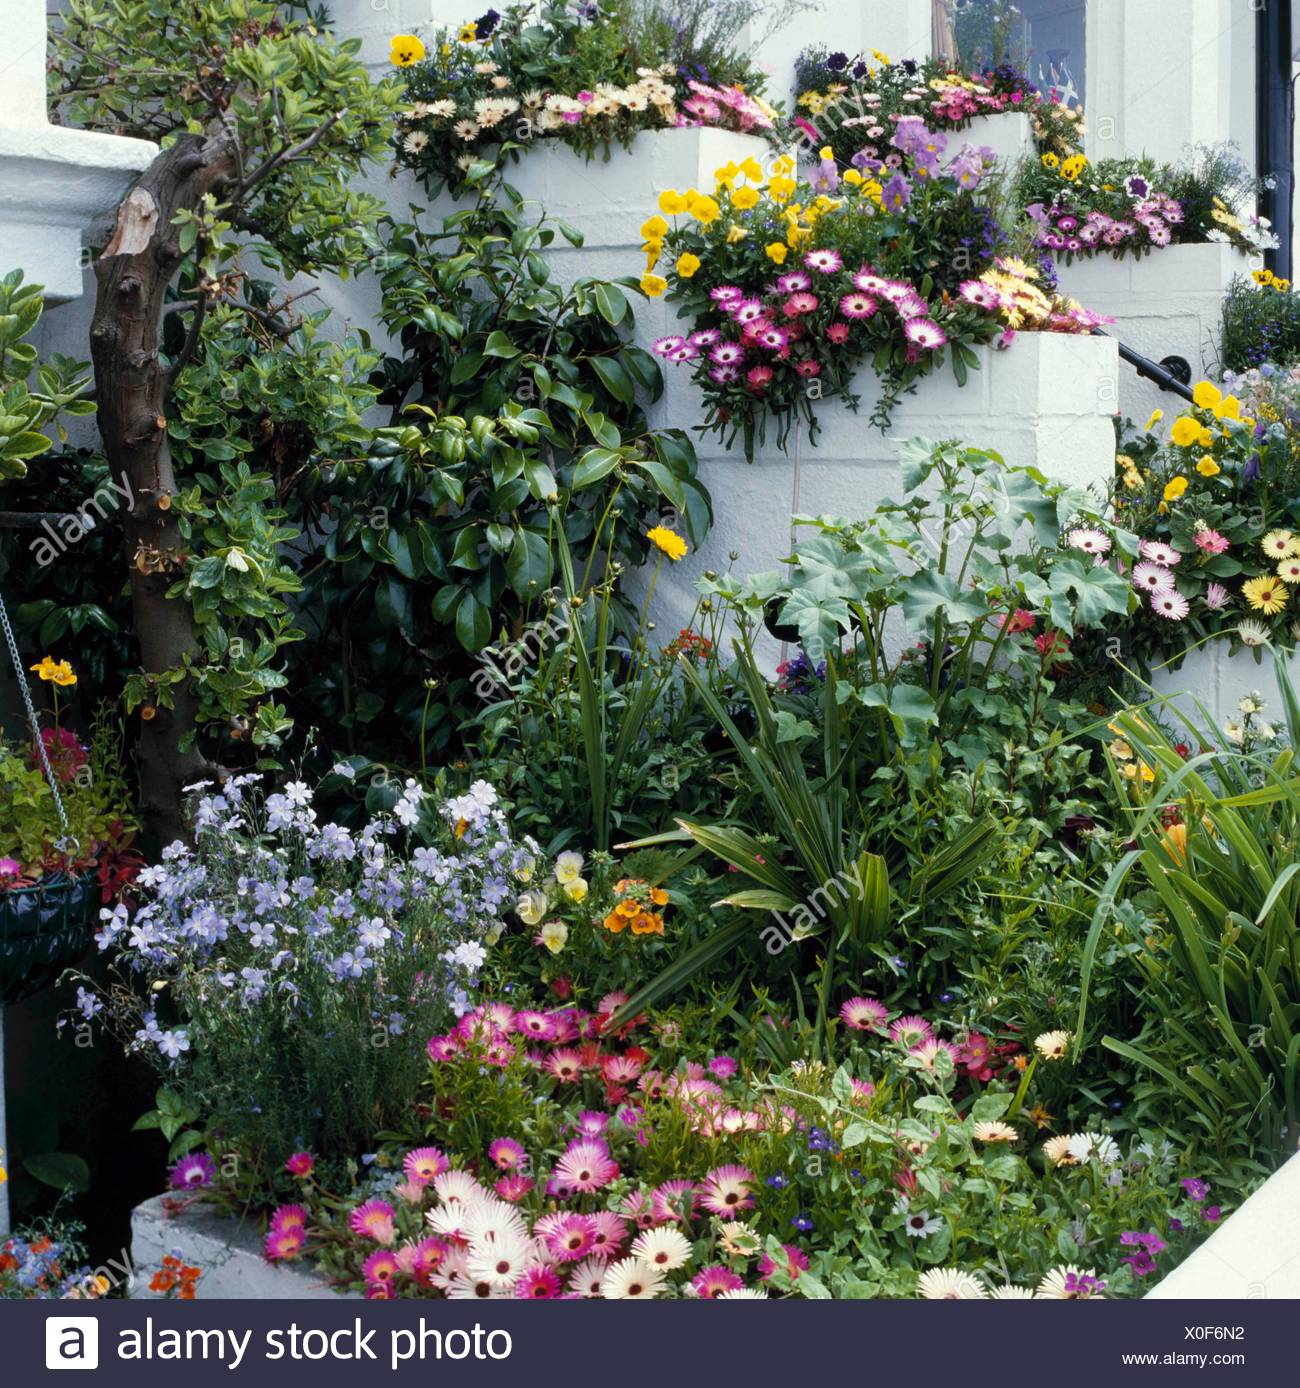 Front Garden   Annuals Grown In Containers And Raised Bed Fill This Front  Garden FRO031834 Pho